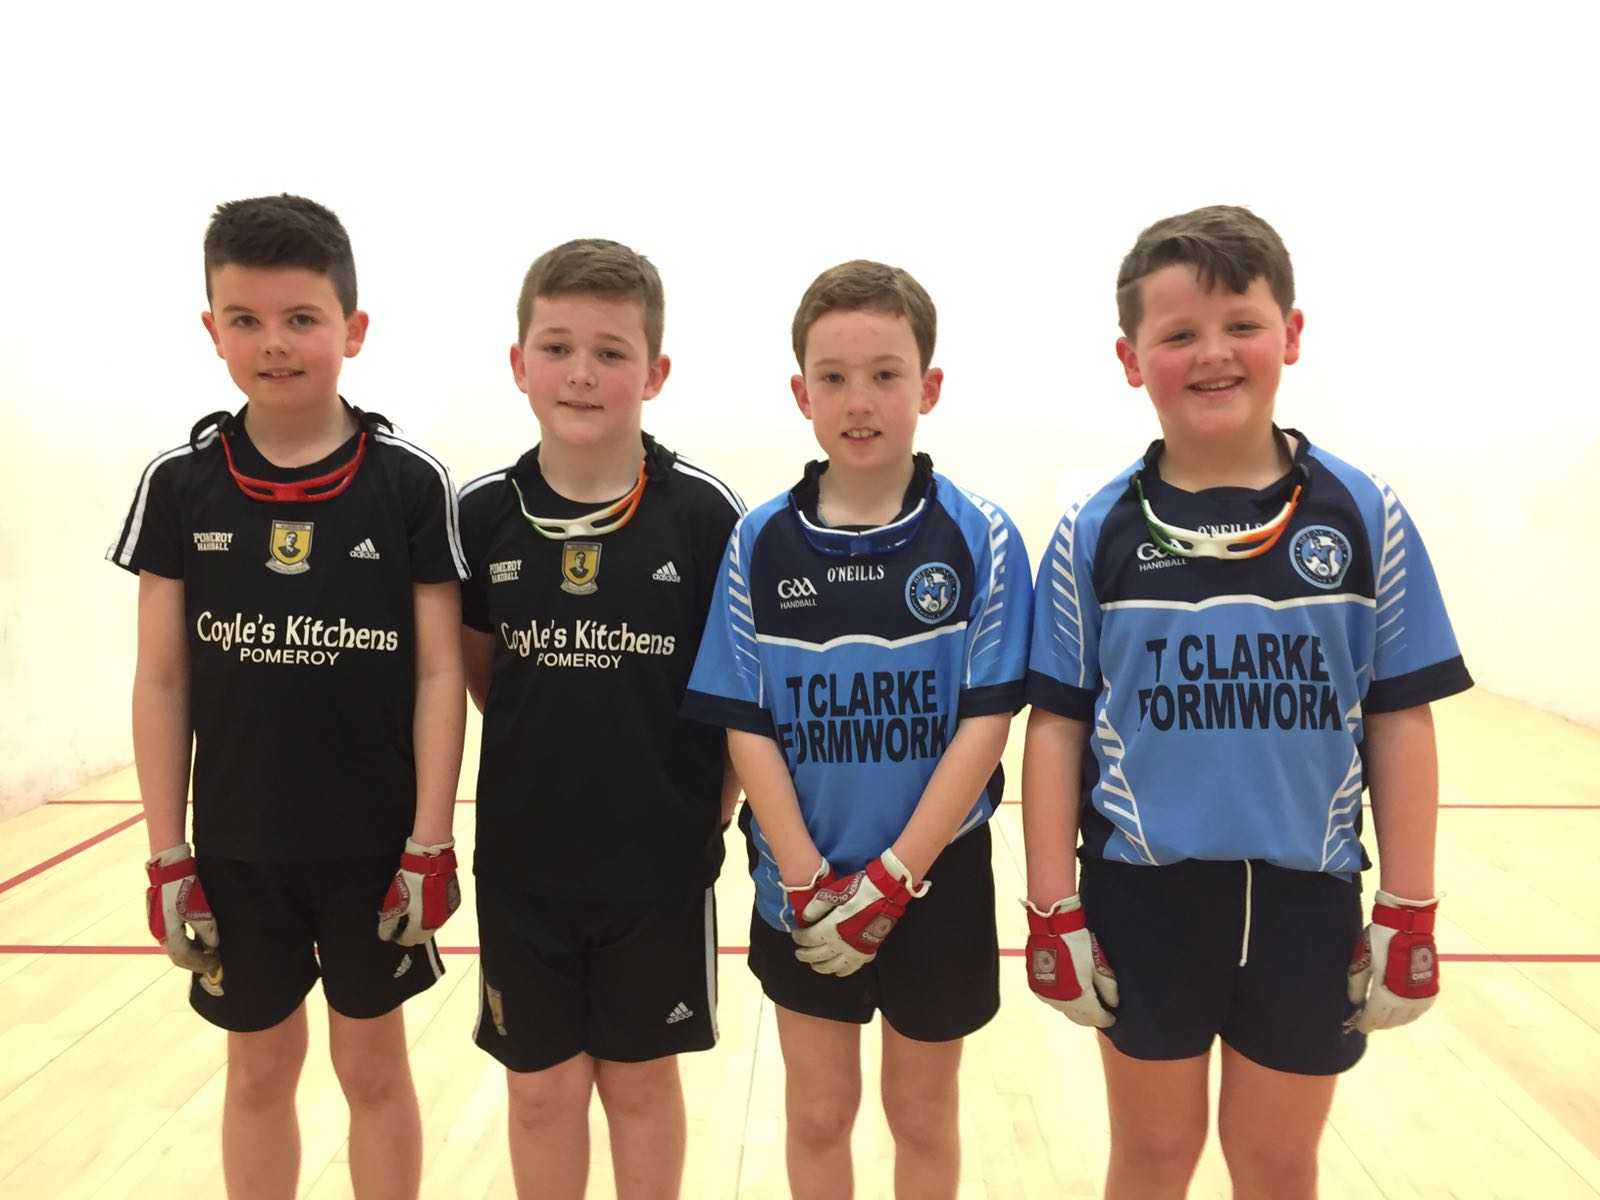 HANDBALL NEWS – SUCCESS FOR TYRONE AT IRISH NATIONALS